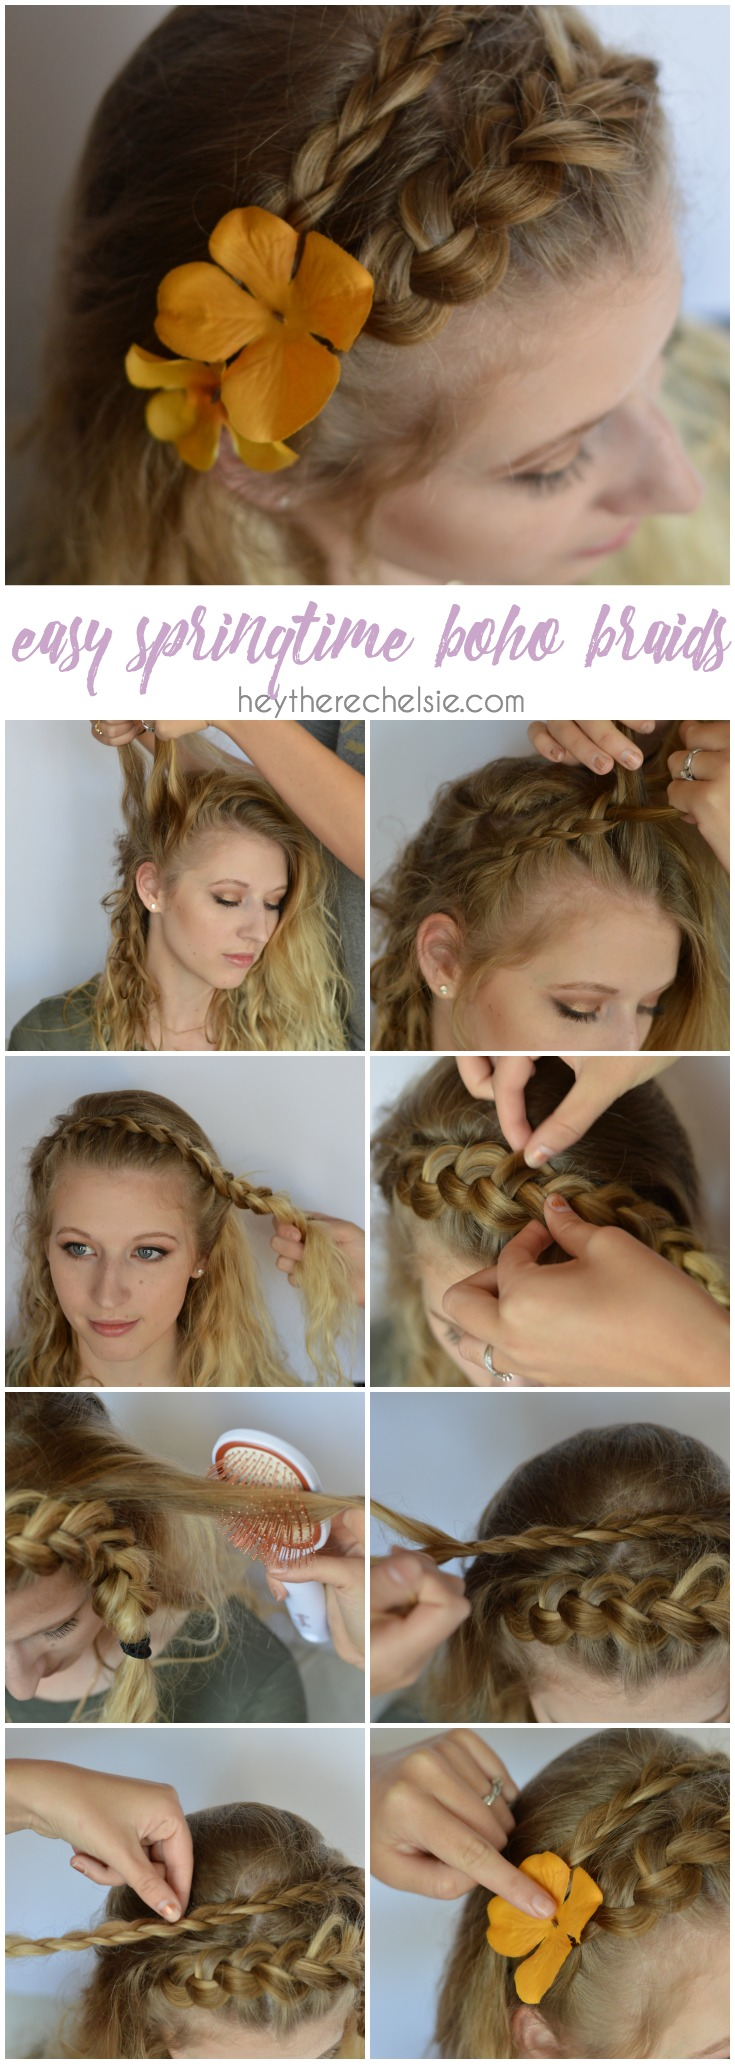 An easy springtime boho braid tutorial. This easy double braid looks beautiful with a few flowers added in; takes about 10 minutes to complete and is the prettiest spring time braid! Check out this tutorial and two more easy springtime hair tutorials to rock as the weather warms up // www.heytherechelsie.com